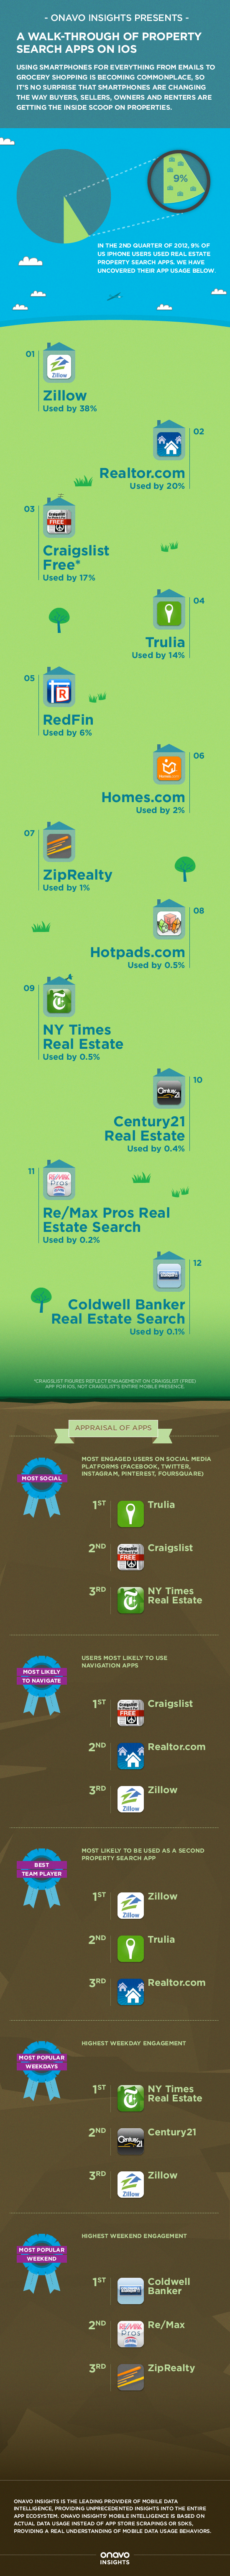 Real Estate Apps for iPhone